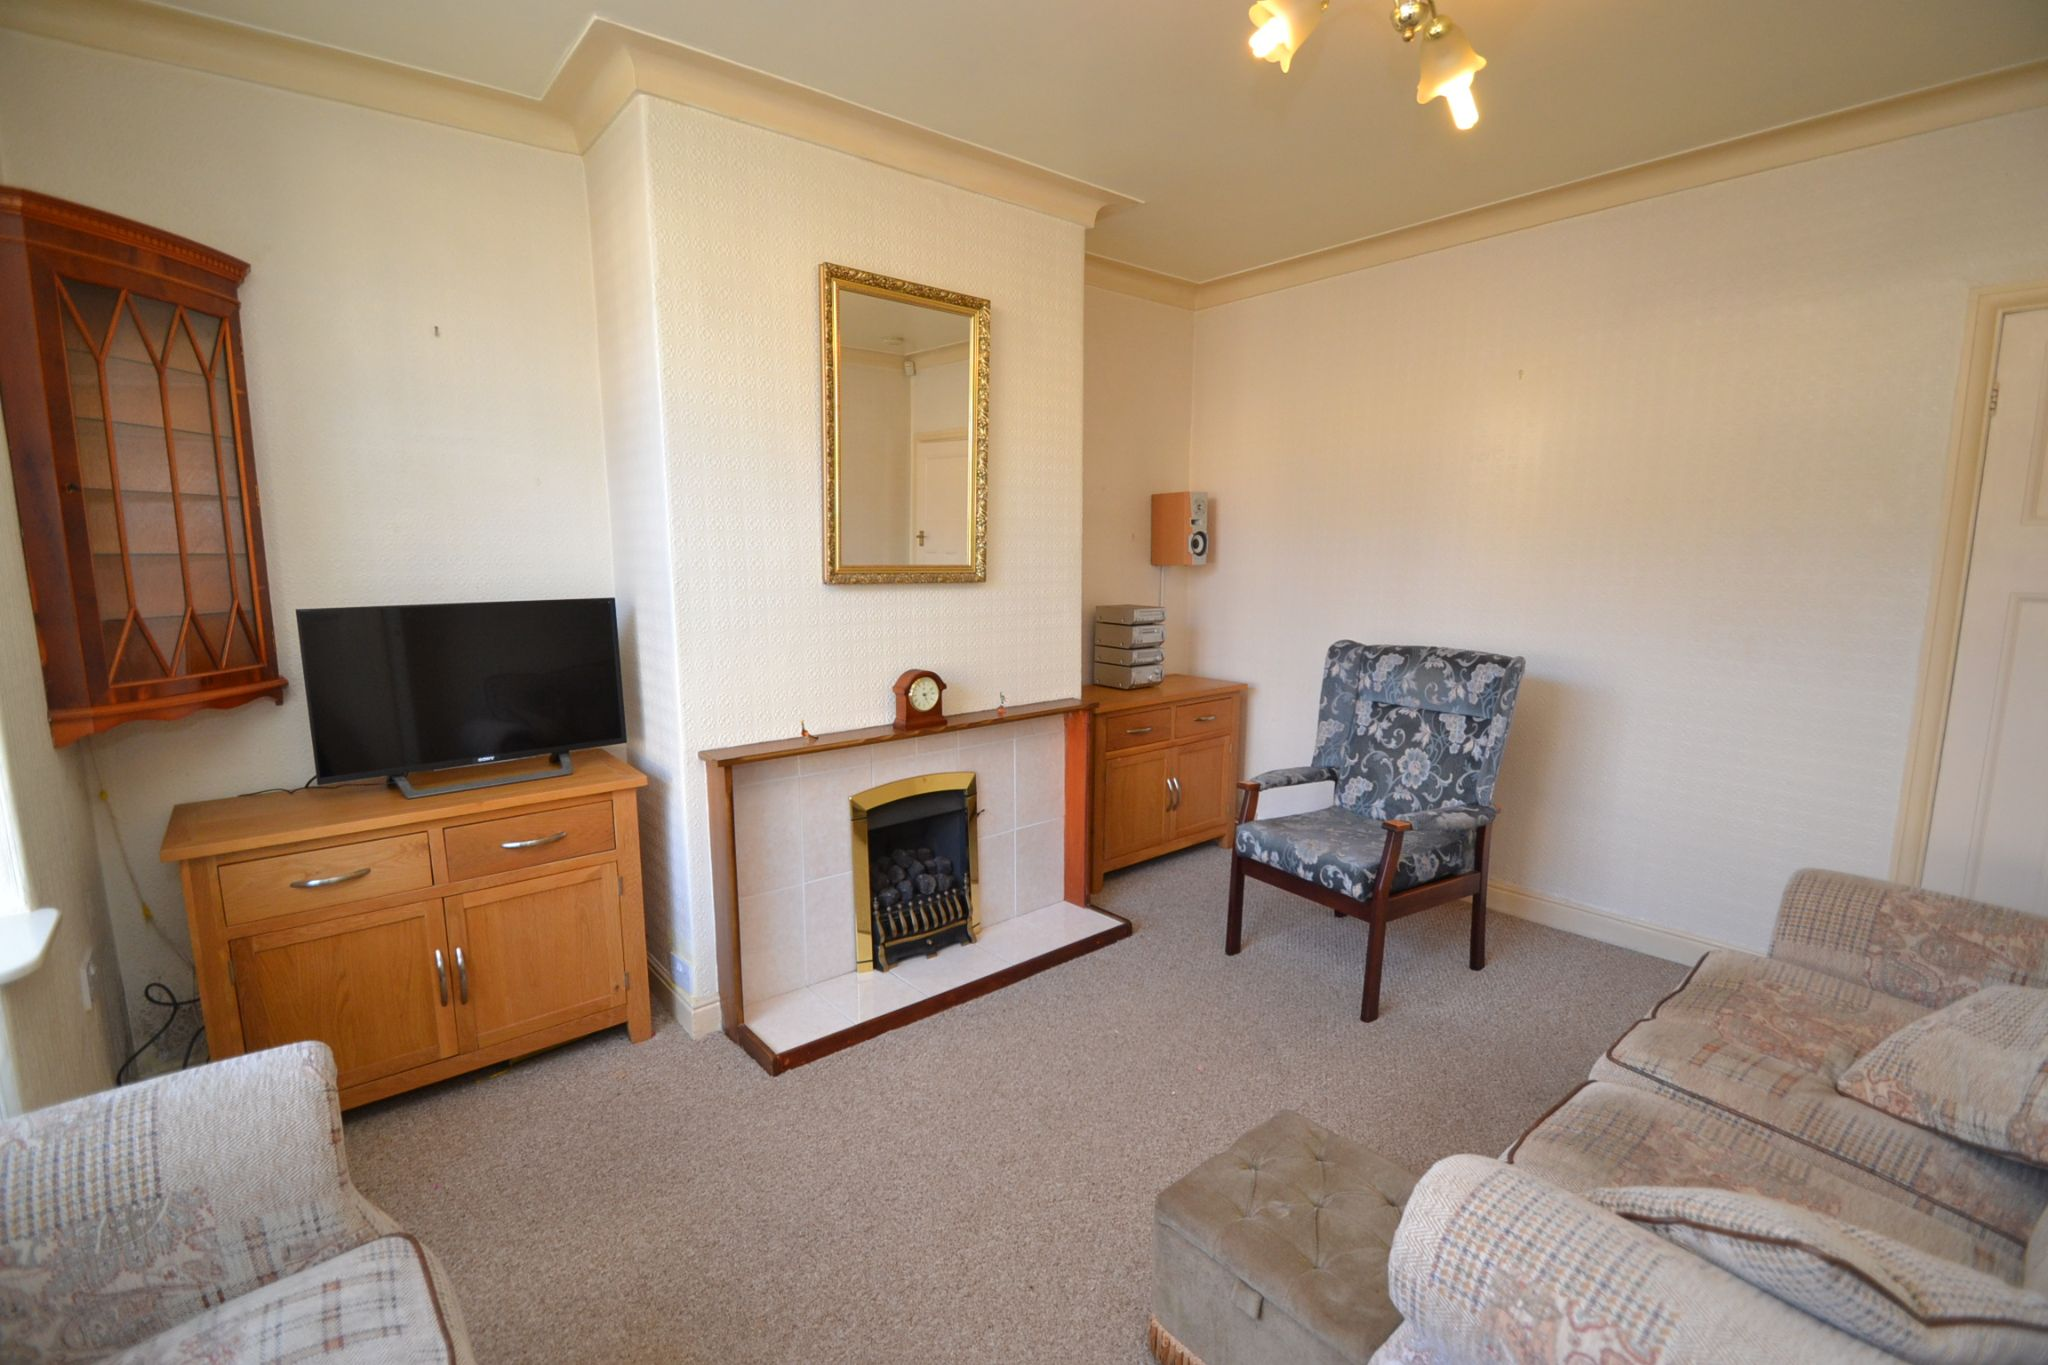 2 Bedroom Semi-detached House For Sale - Photograph 3